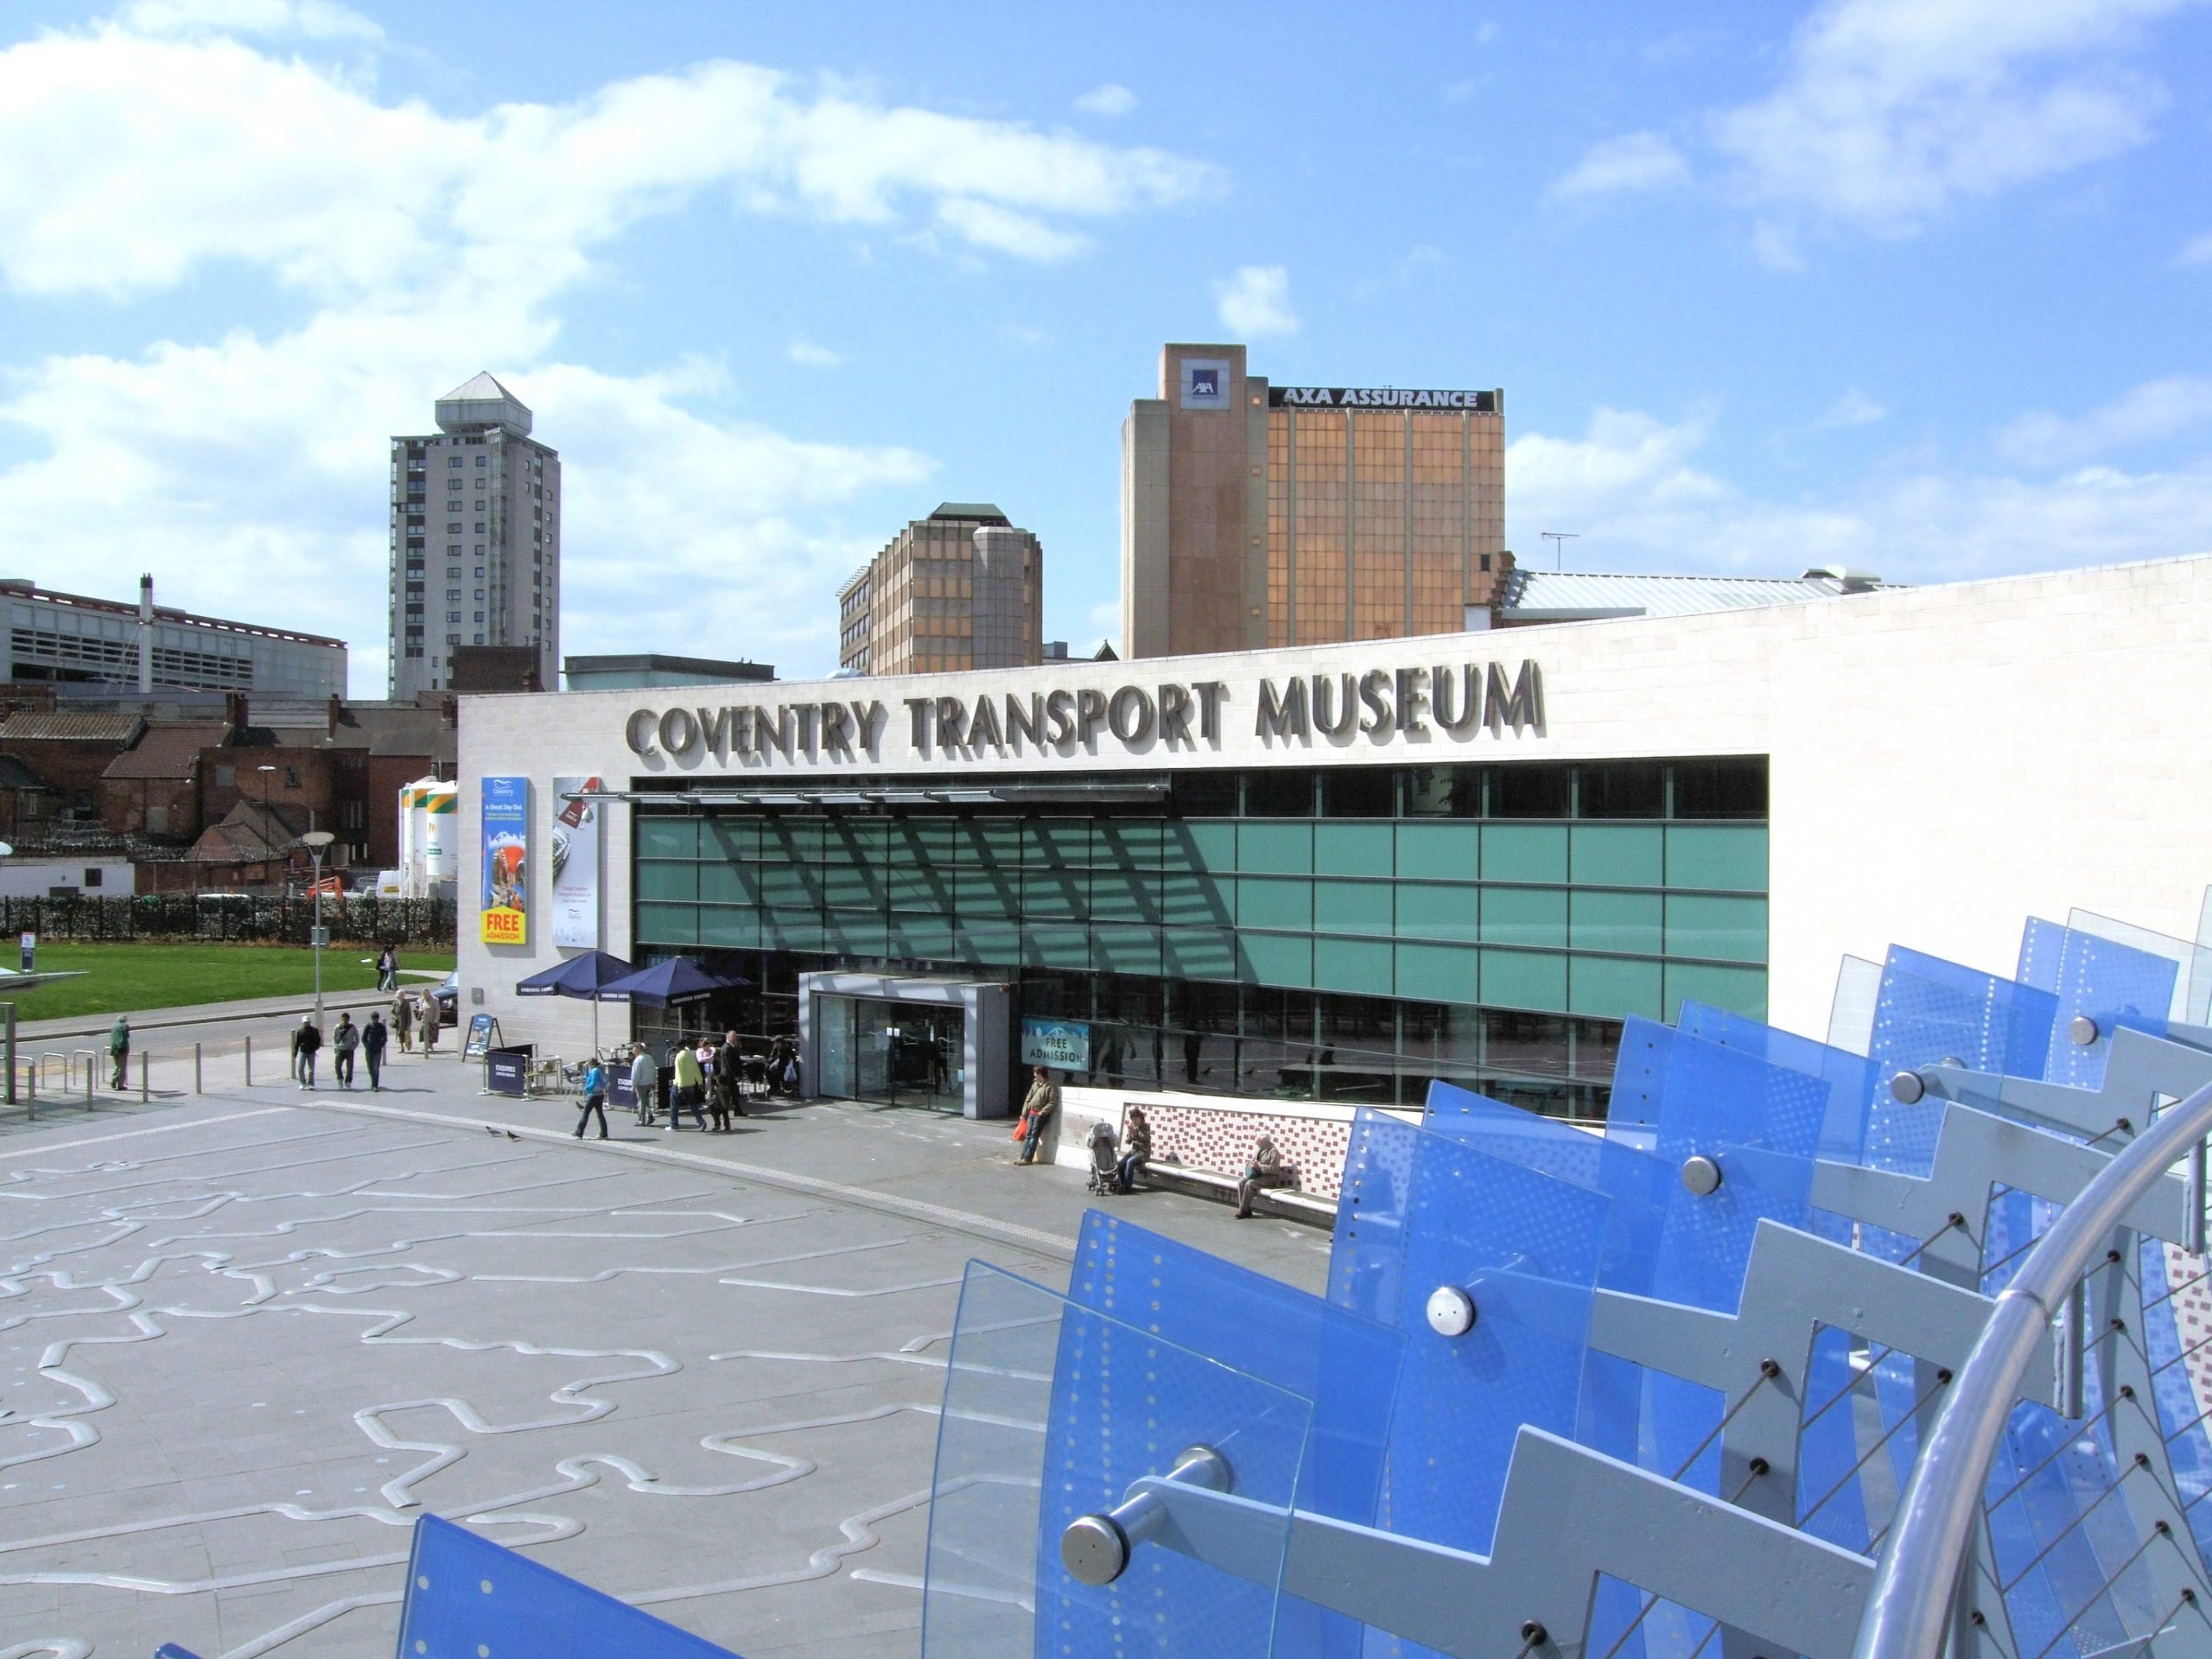 Museum When in Coventry